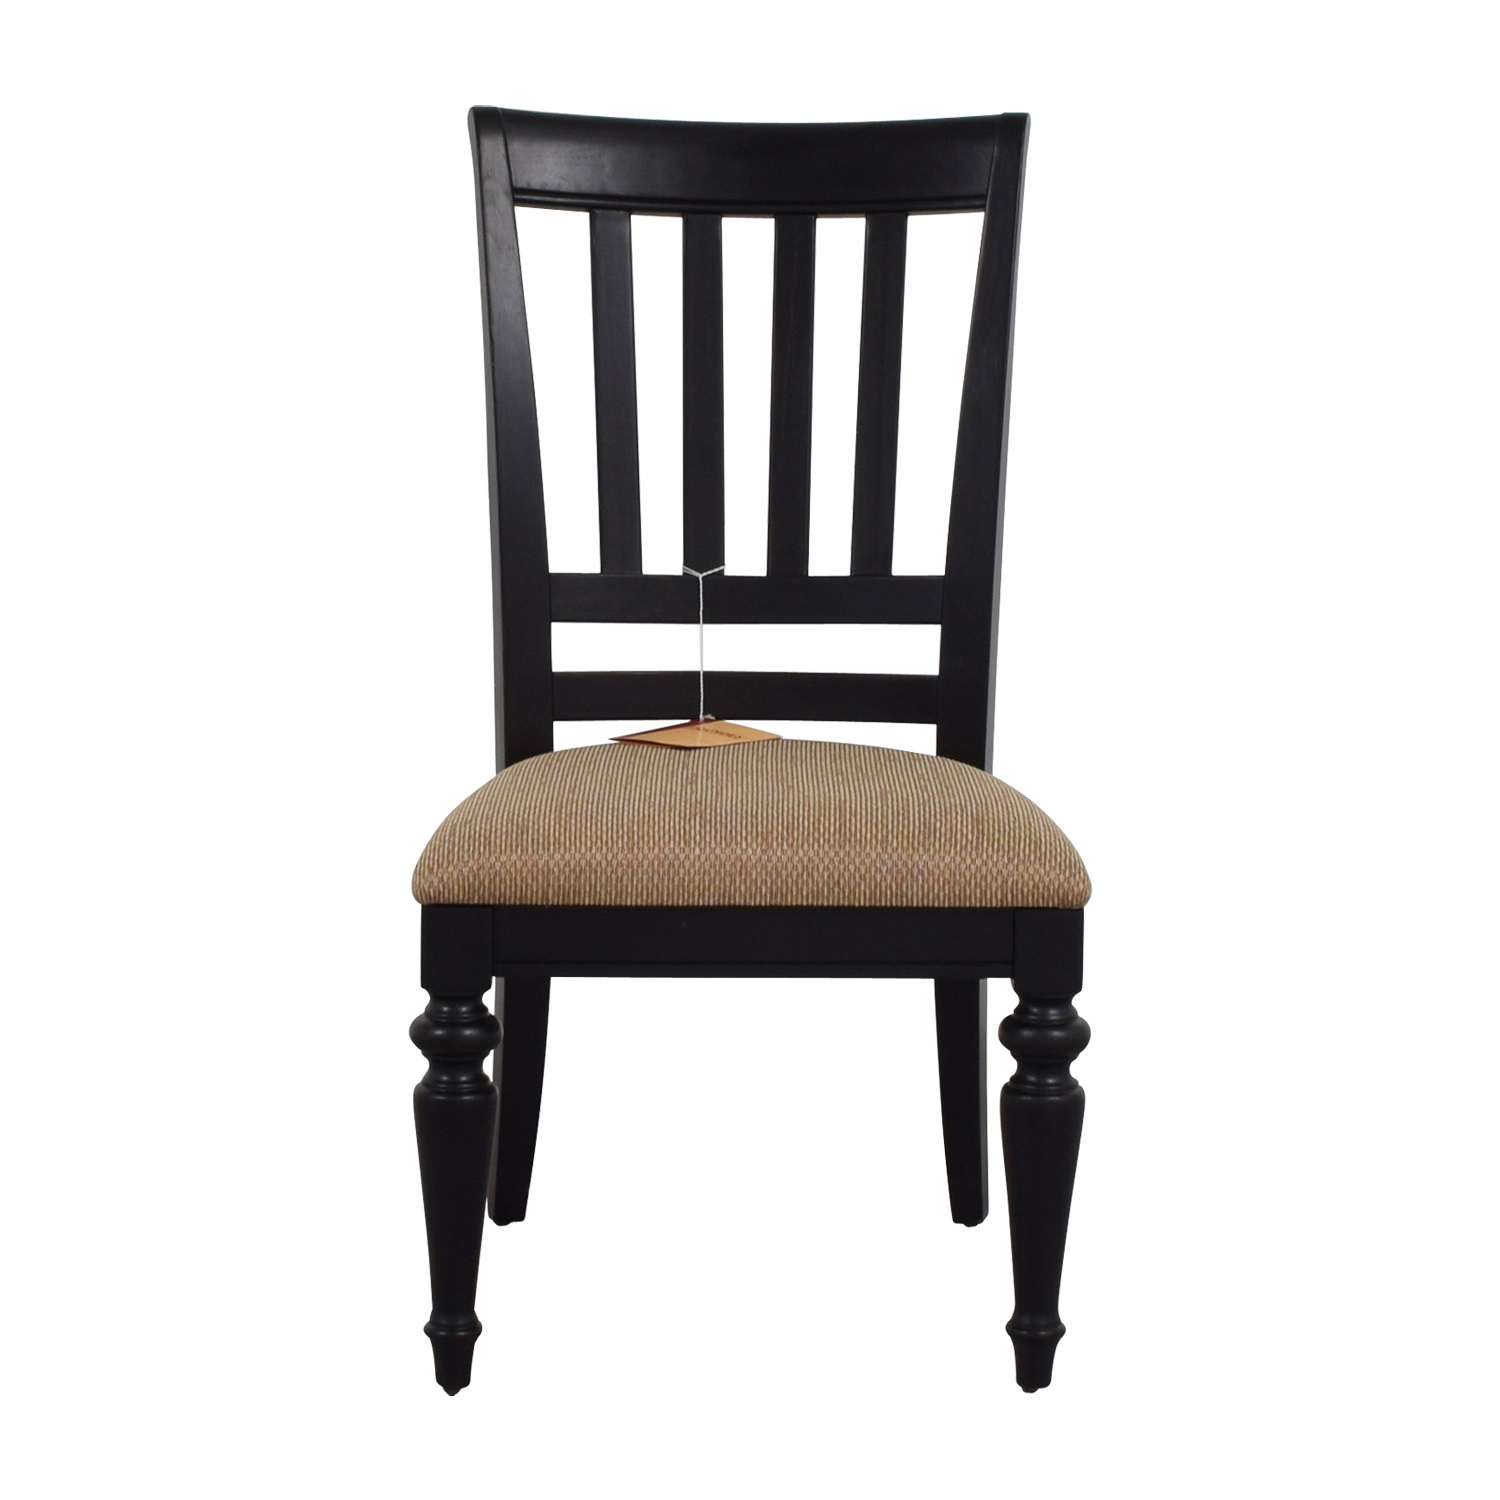 90 Off Poundex Poundex Furniture Black Chair With Padded Seat